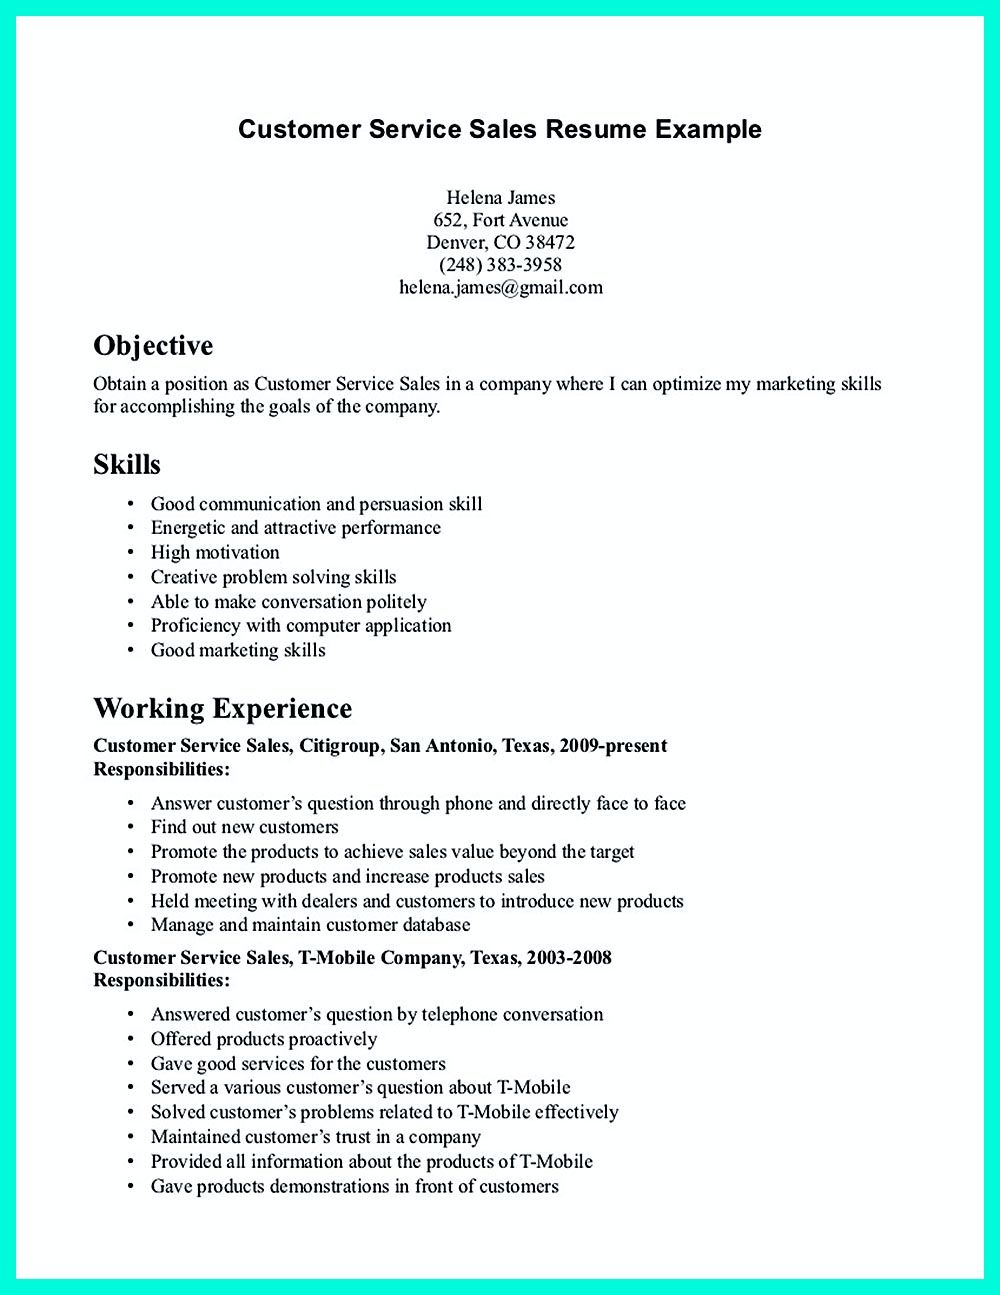 resume Dispatcher Job Description Resume pin on resume sample template and format pinterest explore good examples more